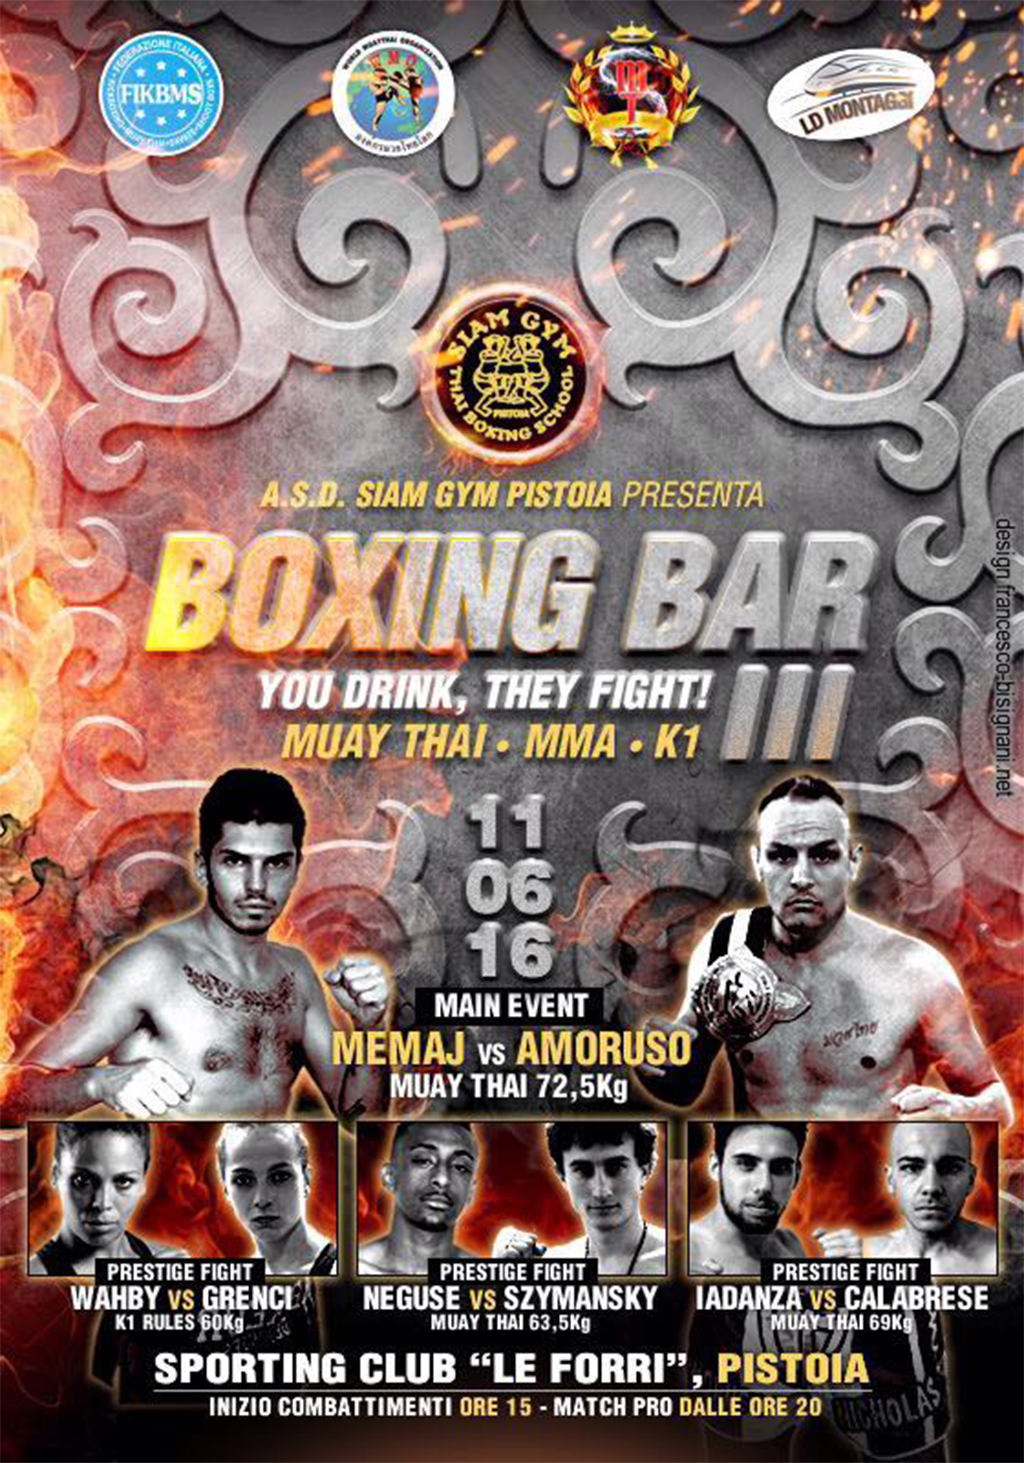 PISTOIA BOXING BAR